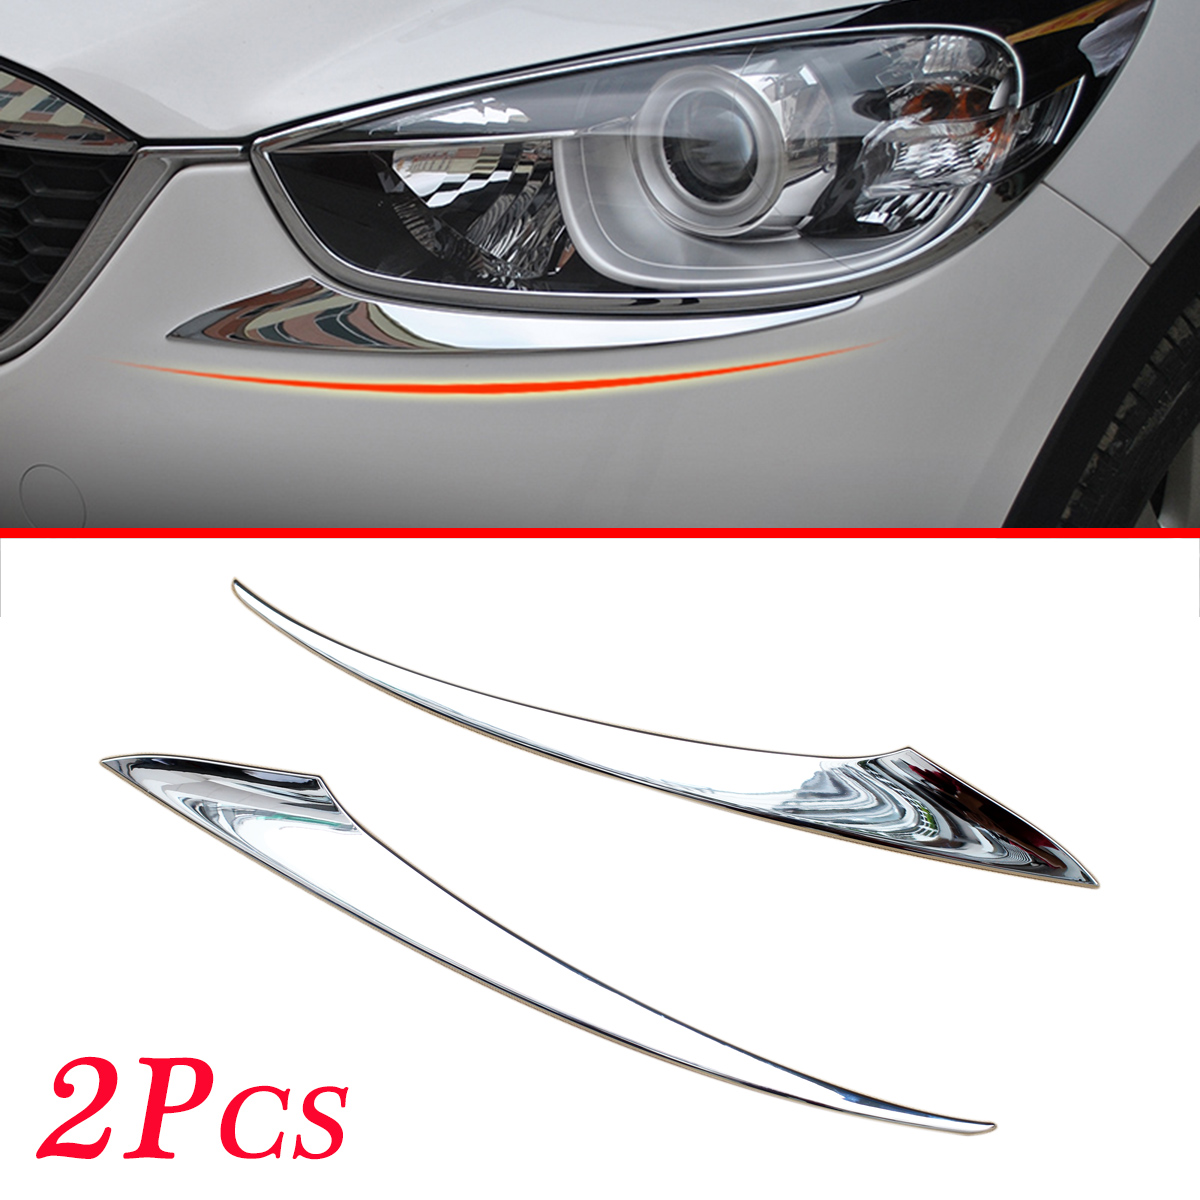 Chrome Front Head Light Lamp Cover Stripes Trim Moulding Fit <font><b>For</b></font> <font><b>Mazda</b></font> <font><b>CX</b></font>-<font><b>5</b></font> <font><b>2012</b></font> 2013 2014 2015 <font><b>2016</b></font> Accessories 2Pcs image